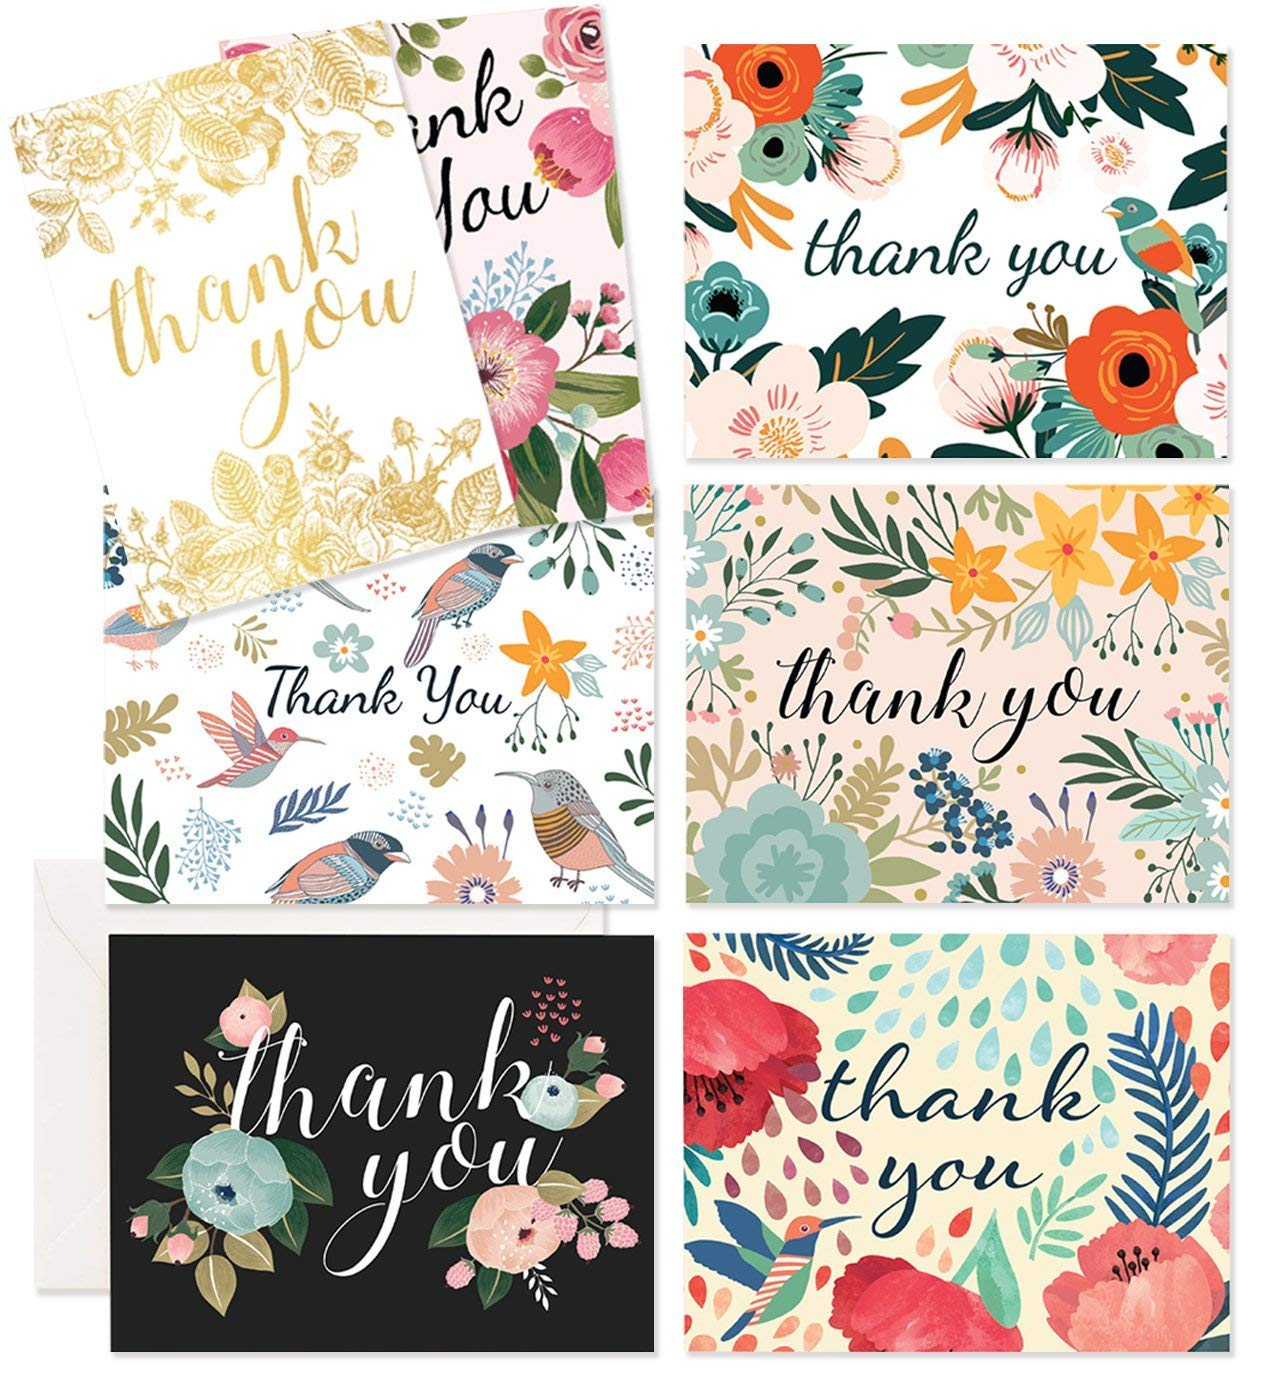 Thank You Cards - 185 Beautiful Thank You Cards - Blank Cards - White Envelopes Included - Bridal, Baby Showers and Business (185 Pack - Bonus 24K Gold Card)